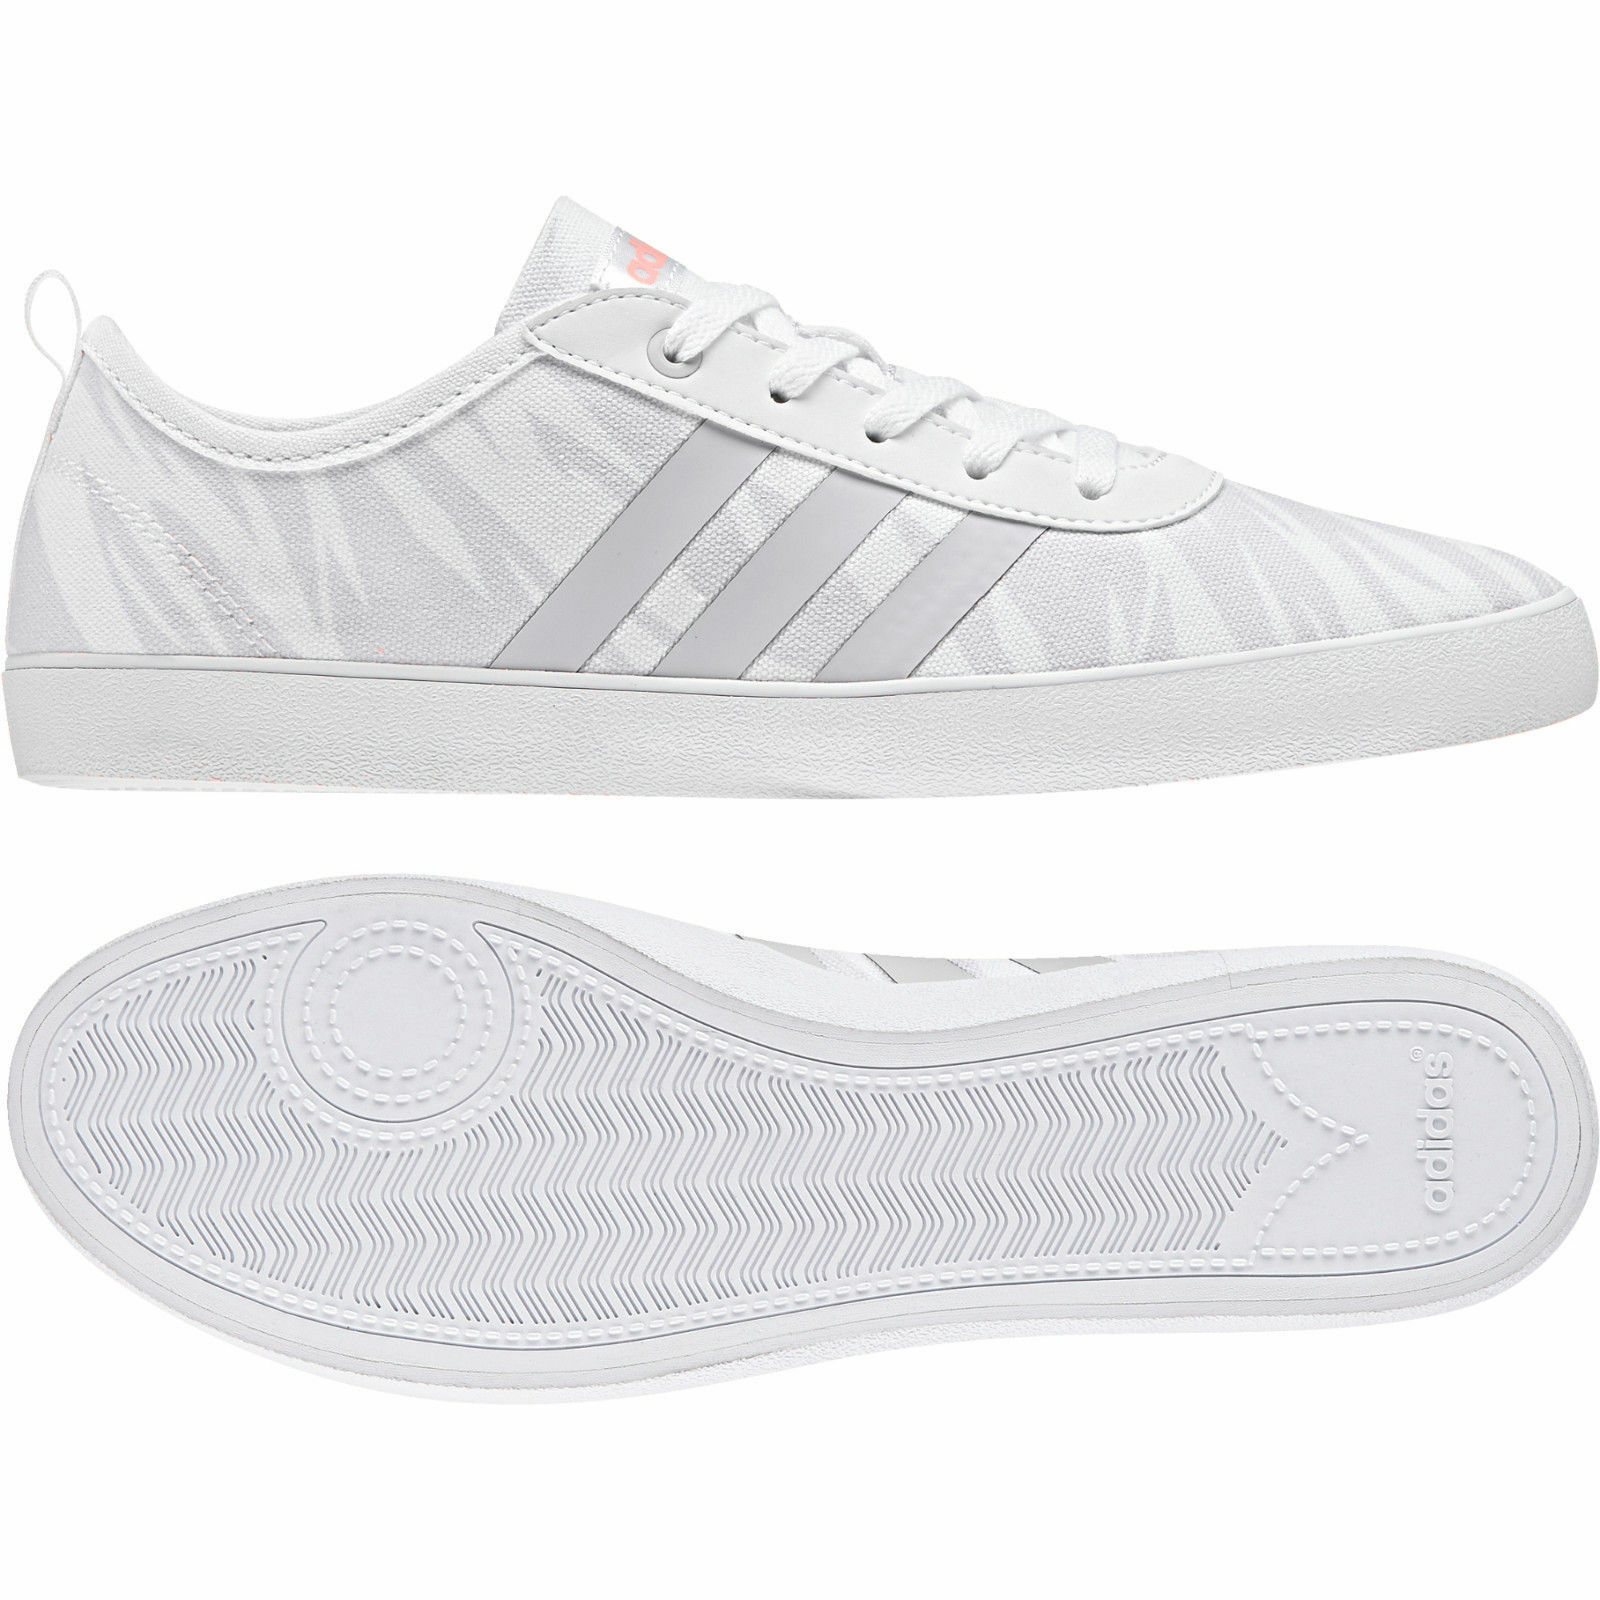 Adidas Neo Women shoes Cloudfoam QT Vulc 2.0 Casual Fashion White DB1799